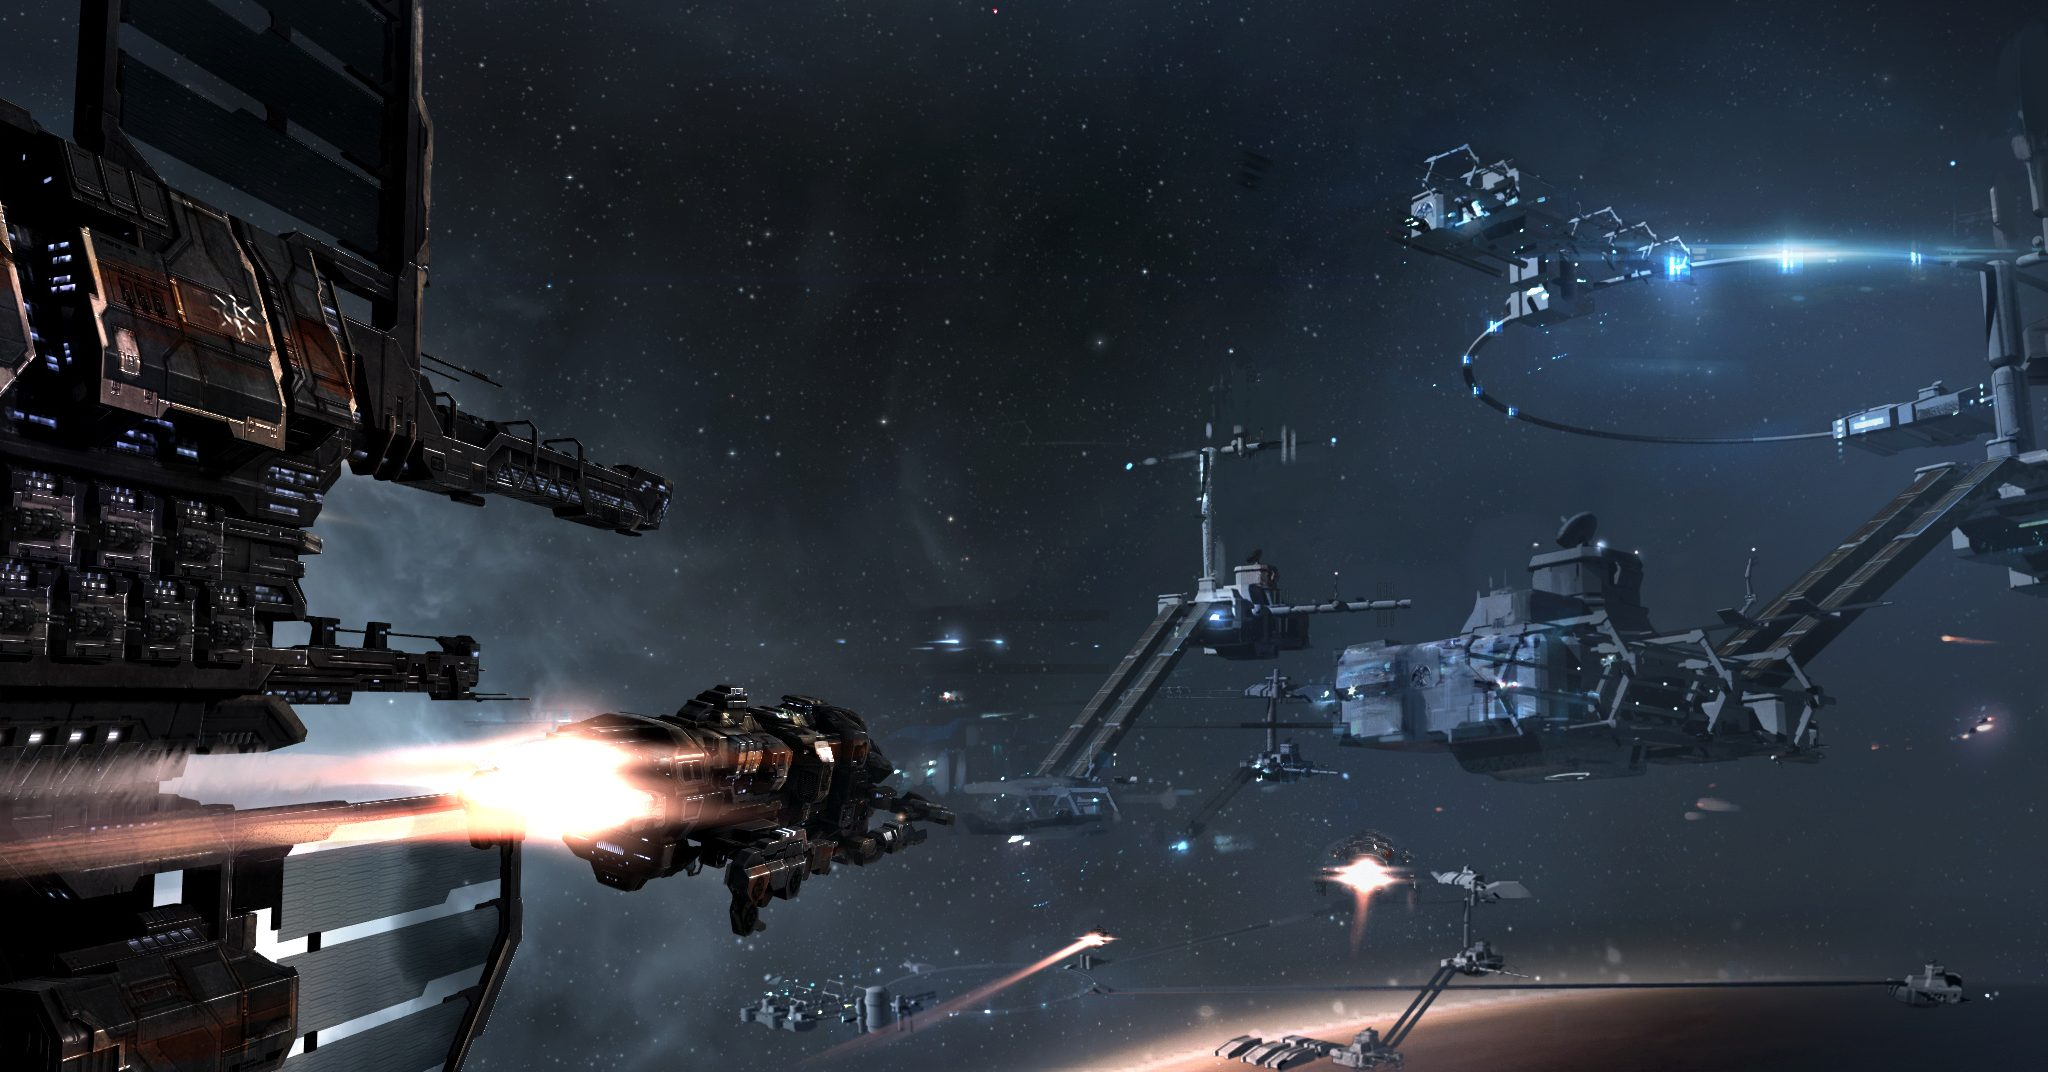 eve online gameplay 2017 - photo #11